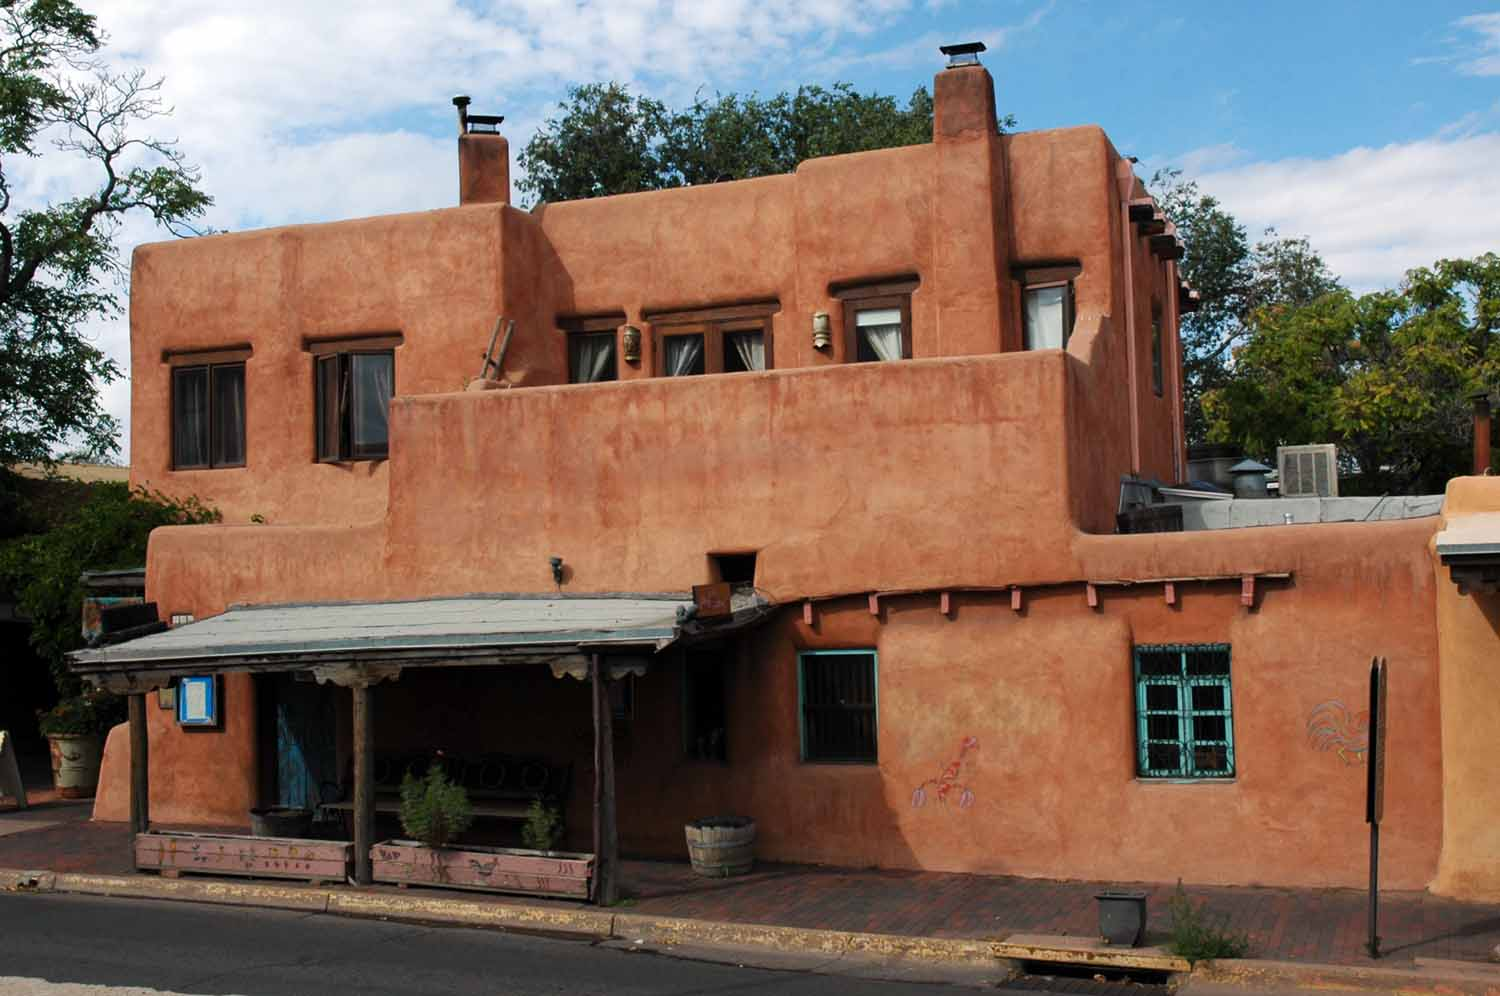 Love the Santa Fe architecture